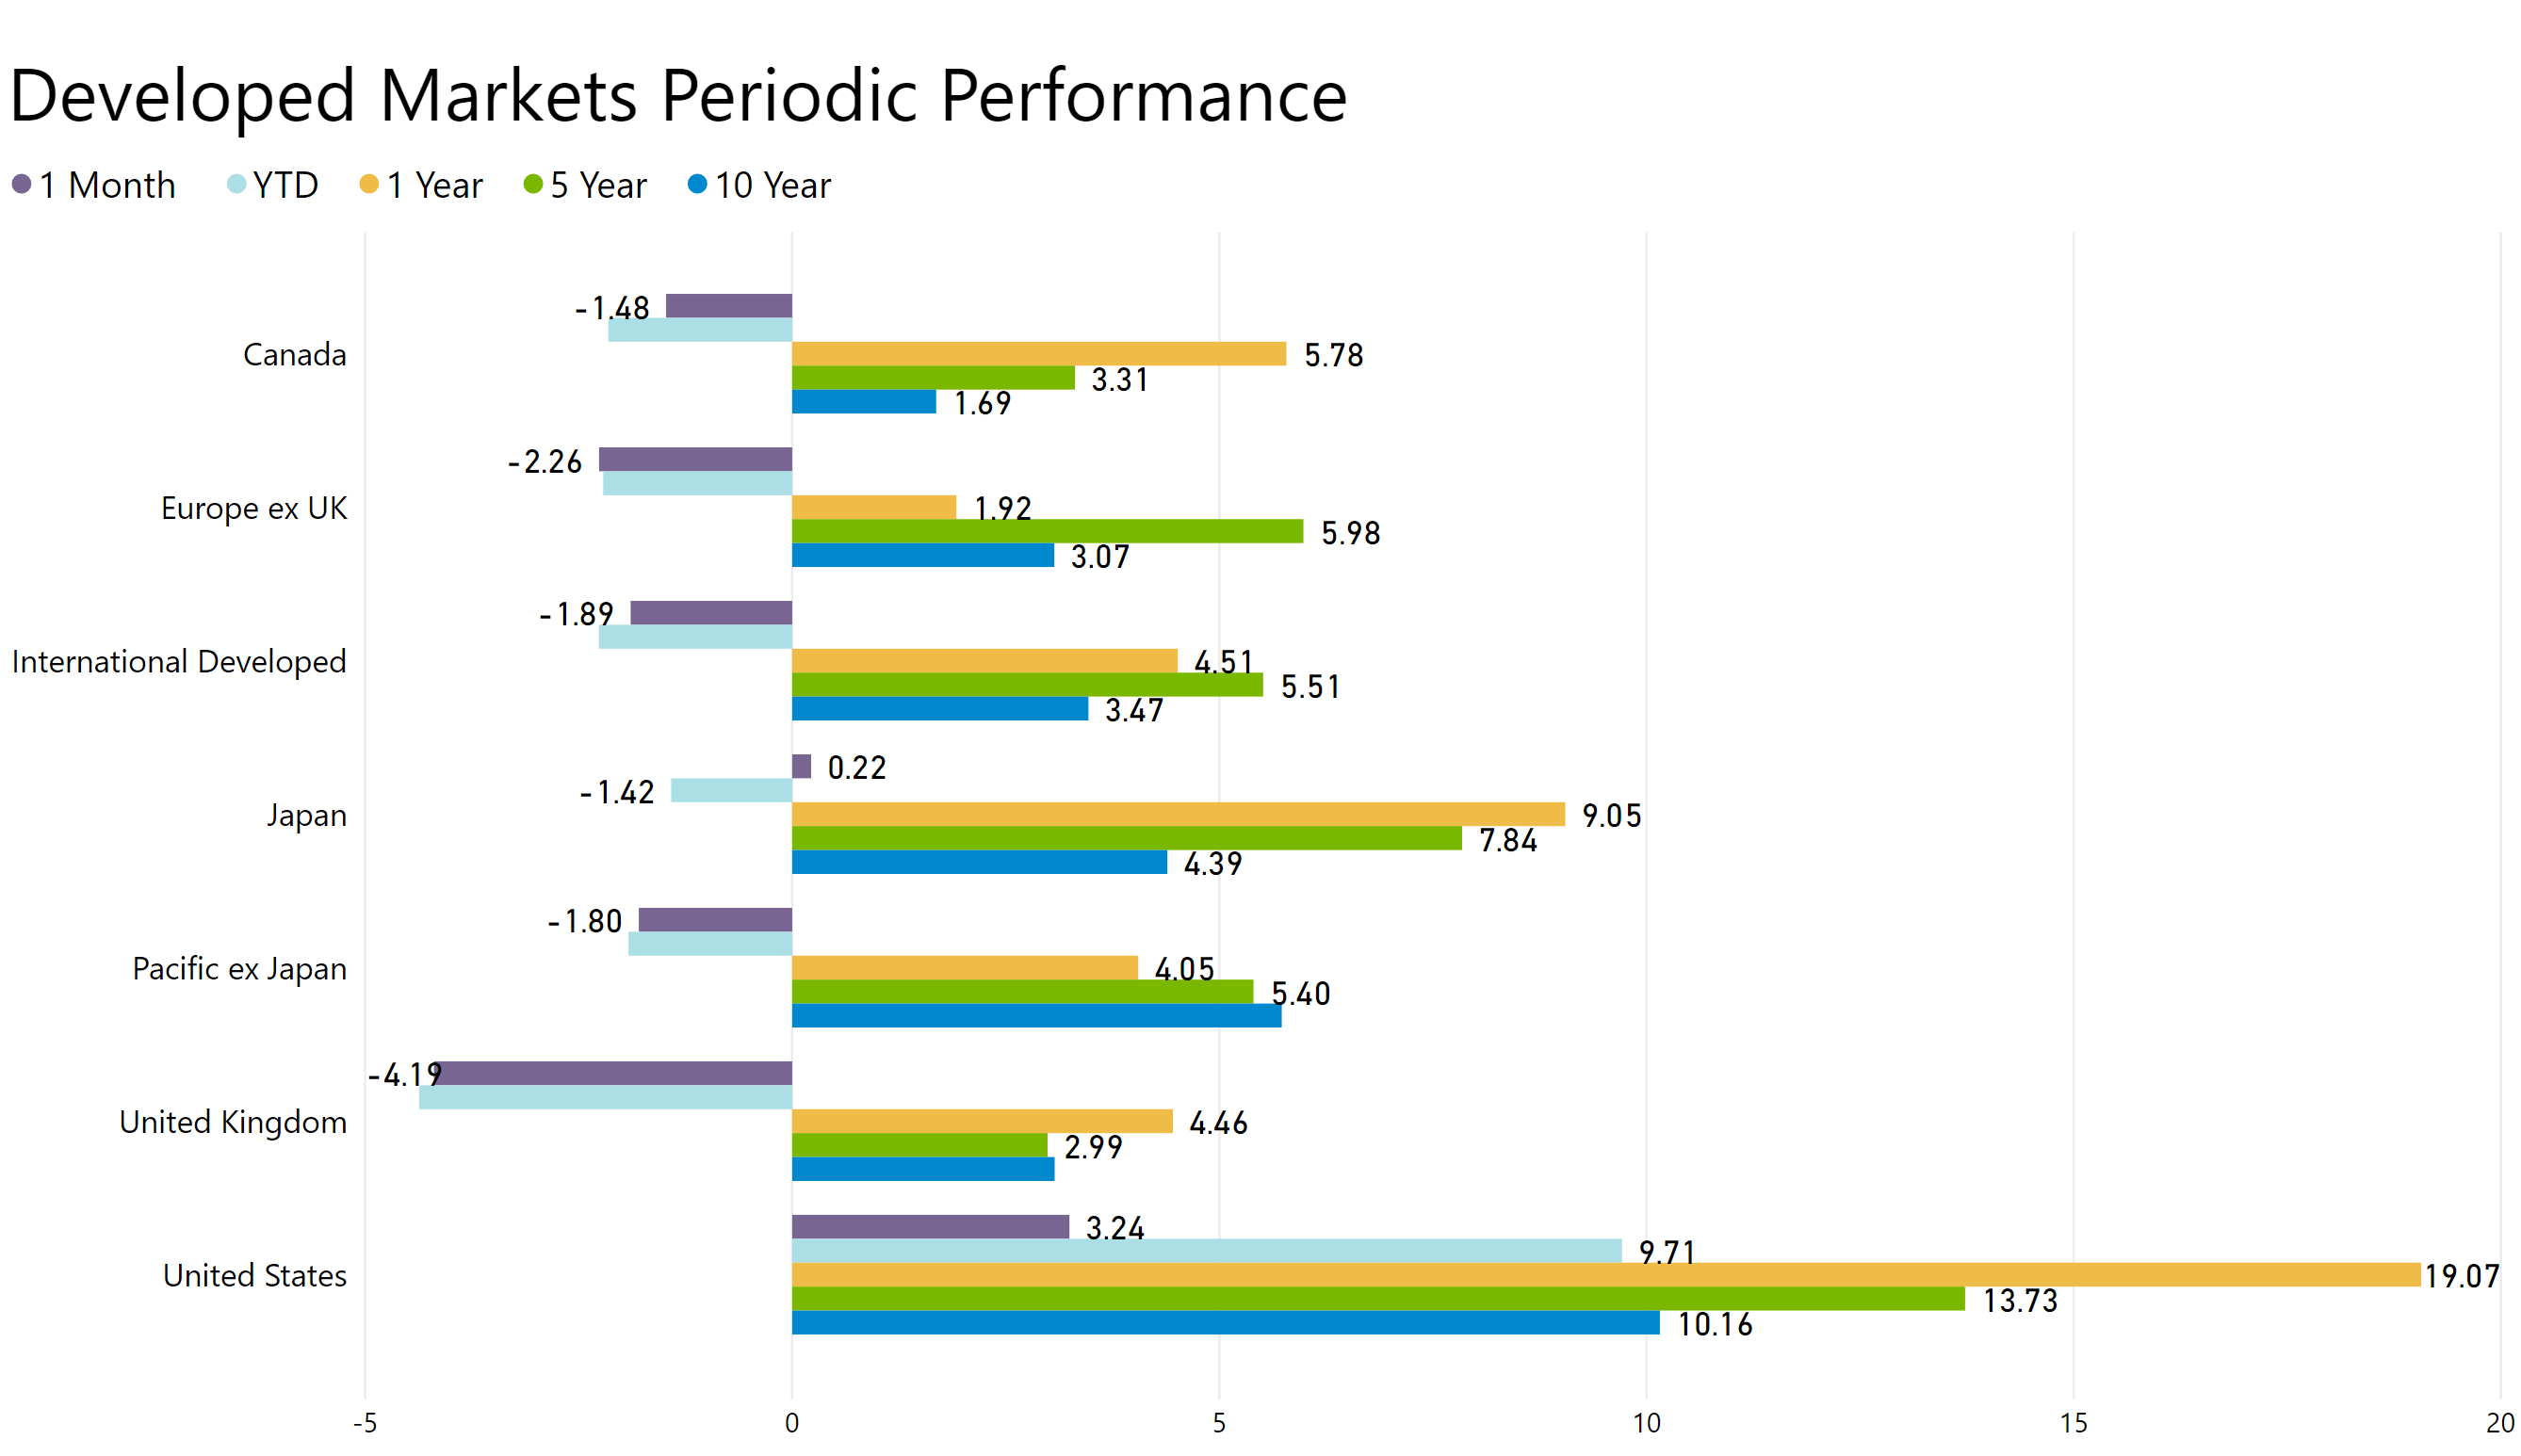 Developed markets periodic performance